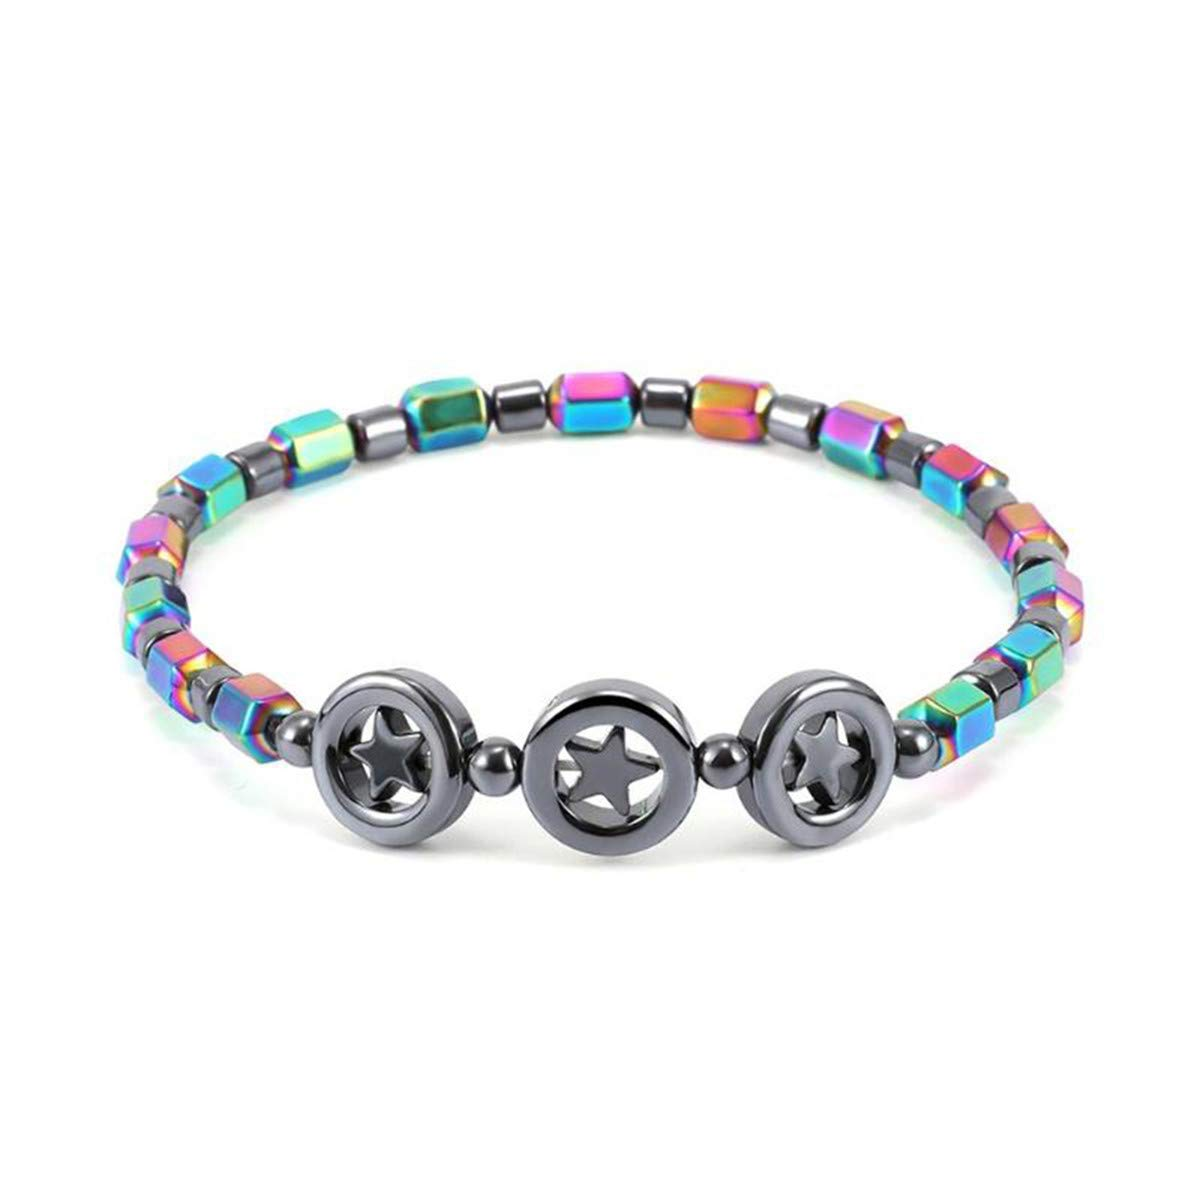 Beiswe Multicolor Stone Beads Anklet Magnet Weight Loss Therapy Hand Foot Slimming Bracelet for Women Men Health Care Jewelry (Style 1)